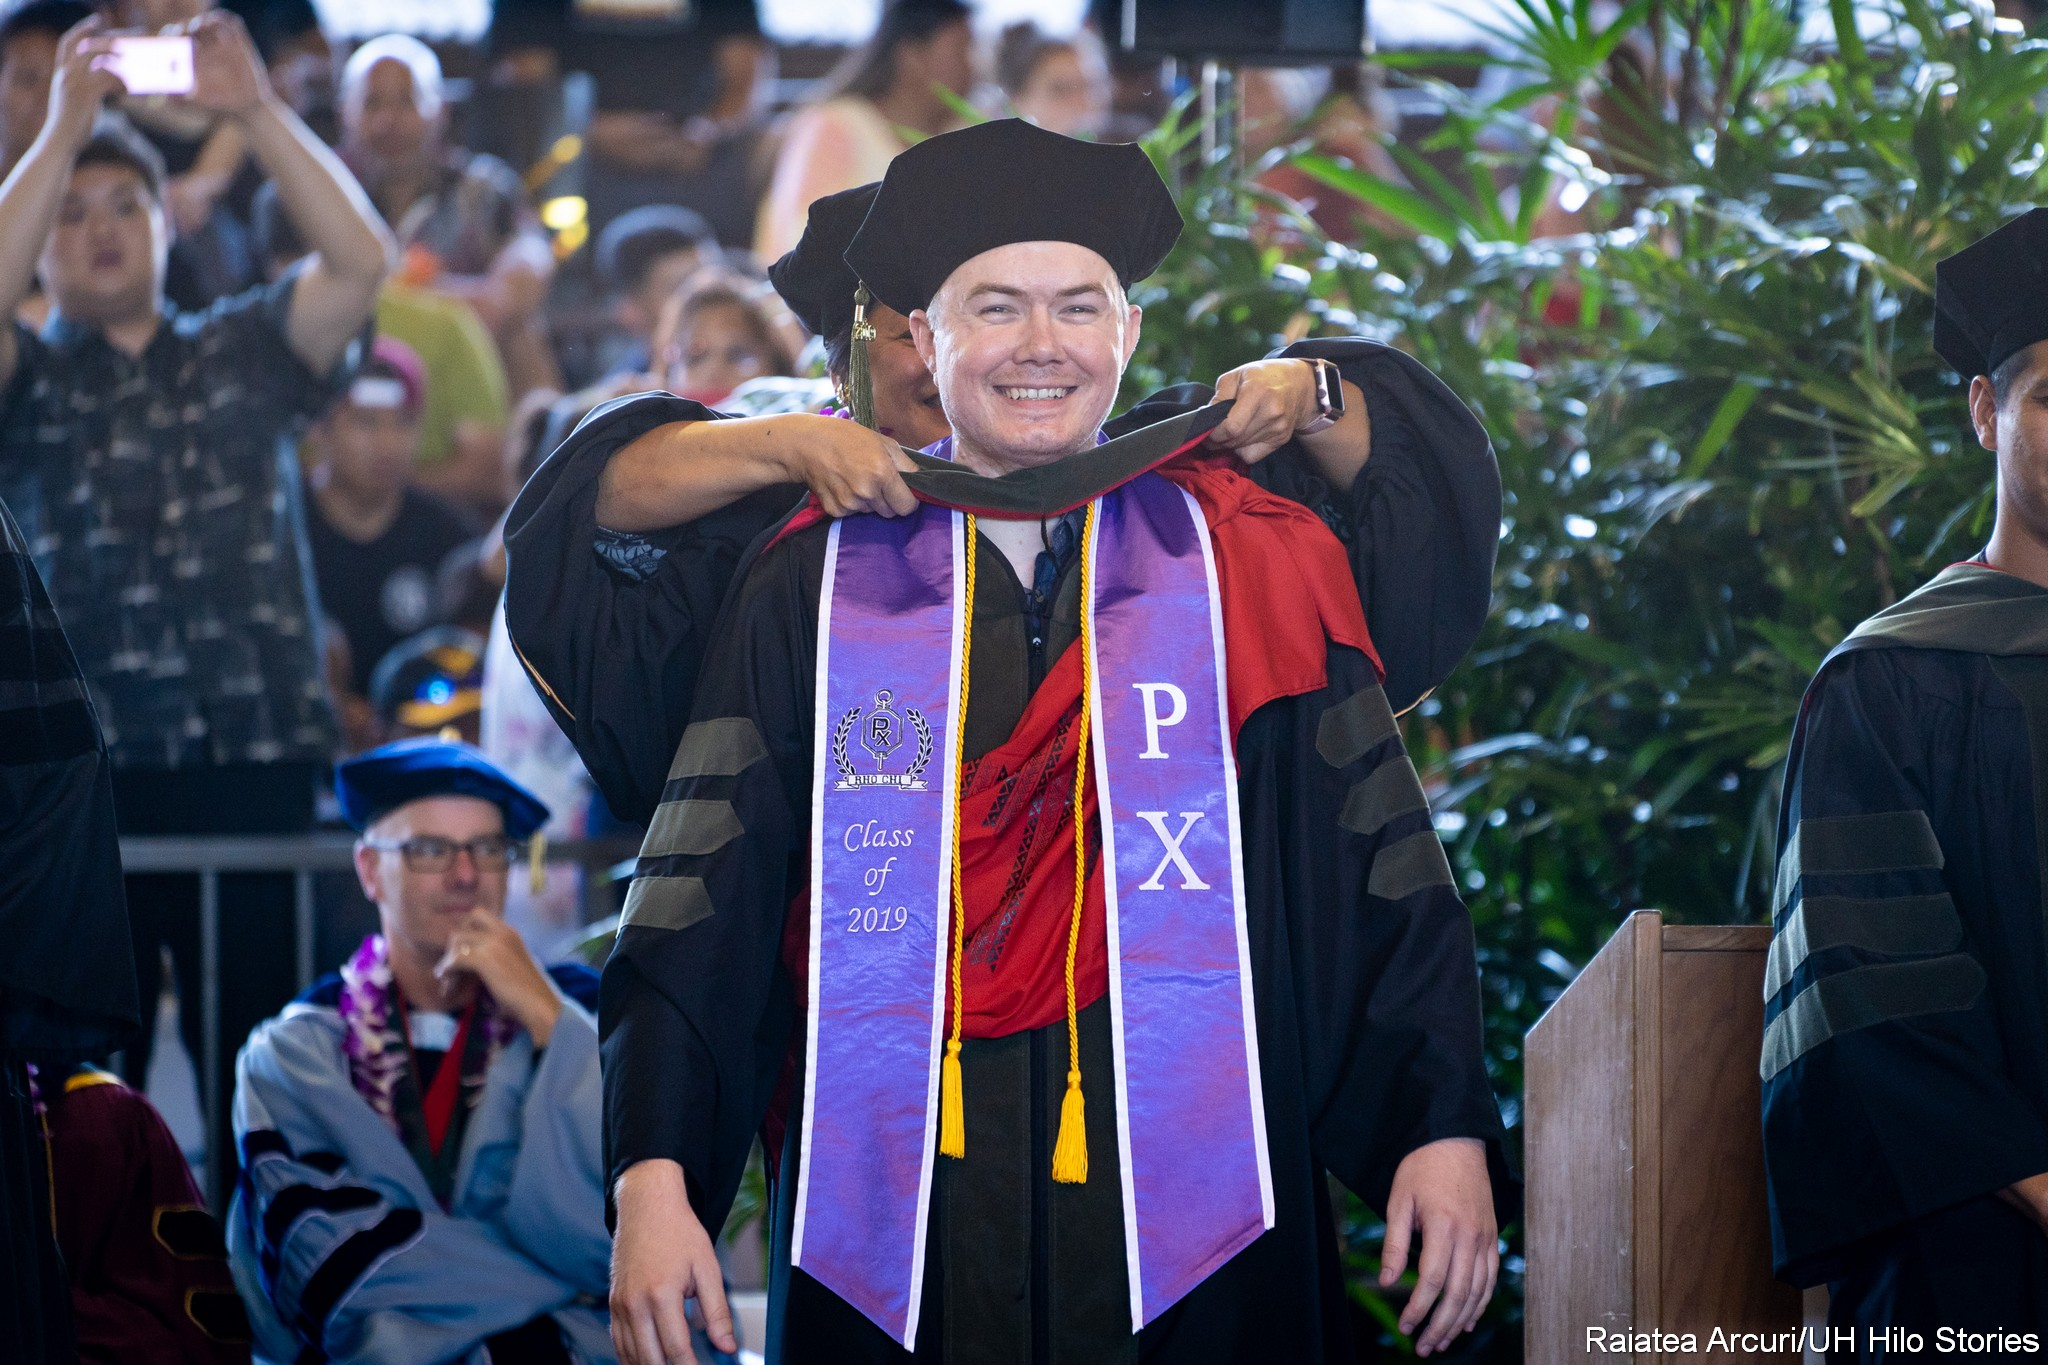 Male graduate with PX purple sash has hood placed on shoulders.